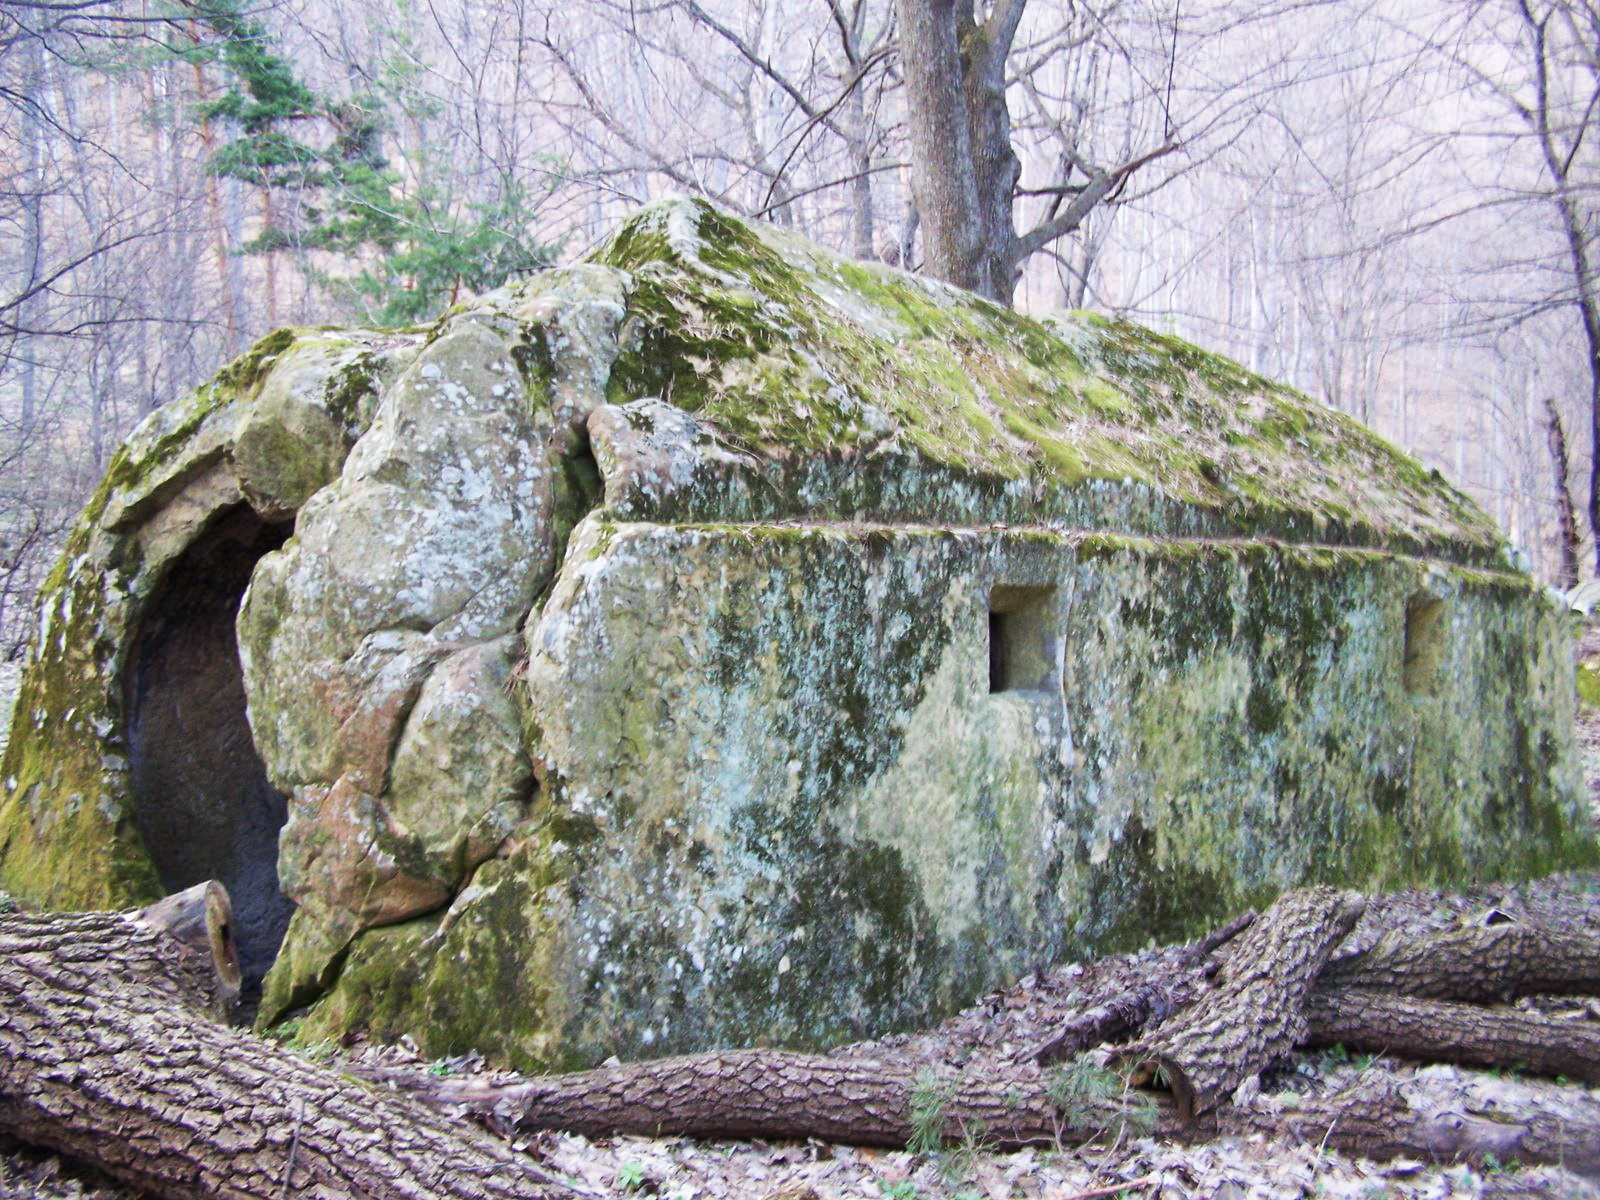 The ancient megaliths, Romania, Europe, mountains, Carpathians, people Carp, Sarmatians, ancient, man, stone, stone house, building ancient, strange stone, letters on stone, Russian Cyrillic letter, the Middle Ages, church, religious building, Christianity, forest , secret